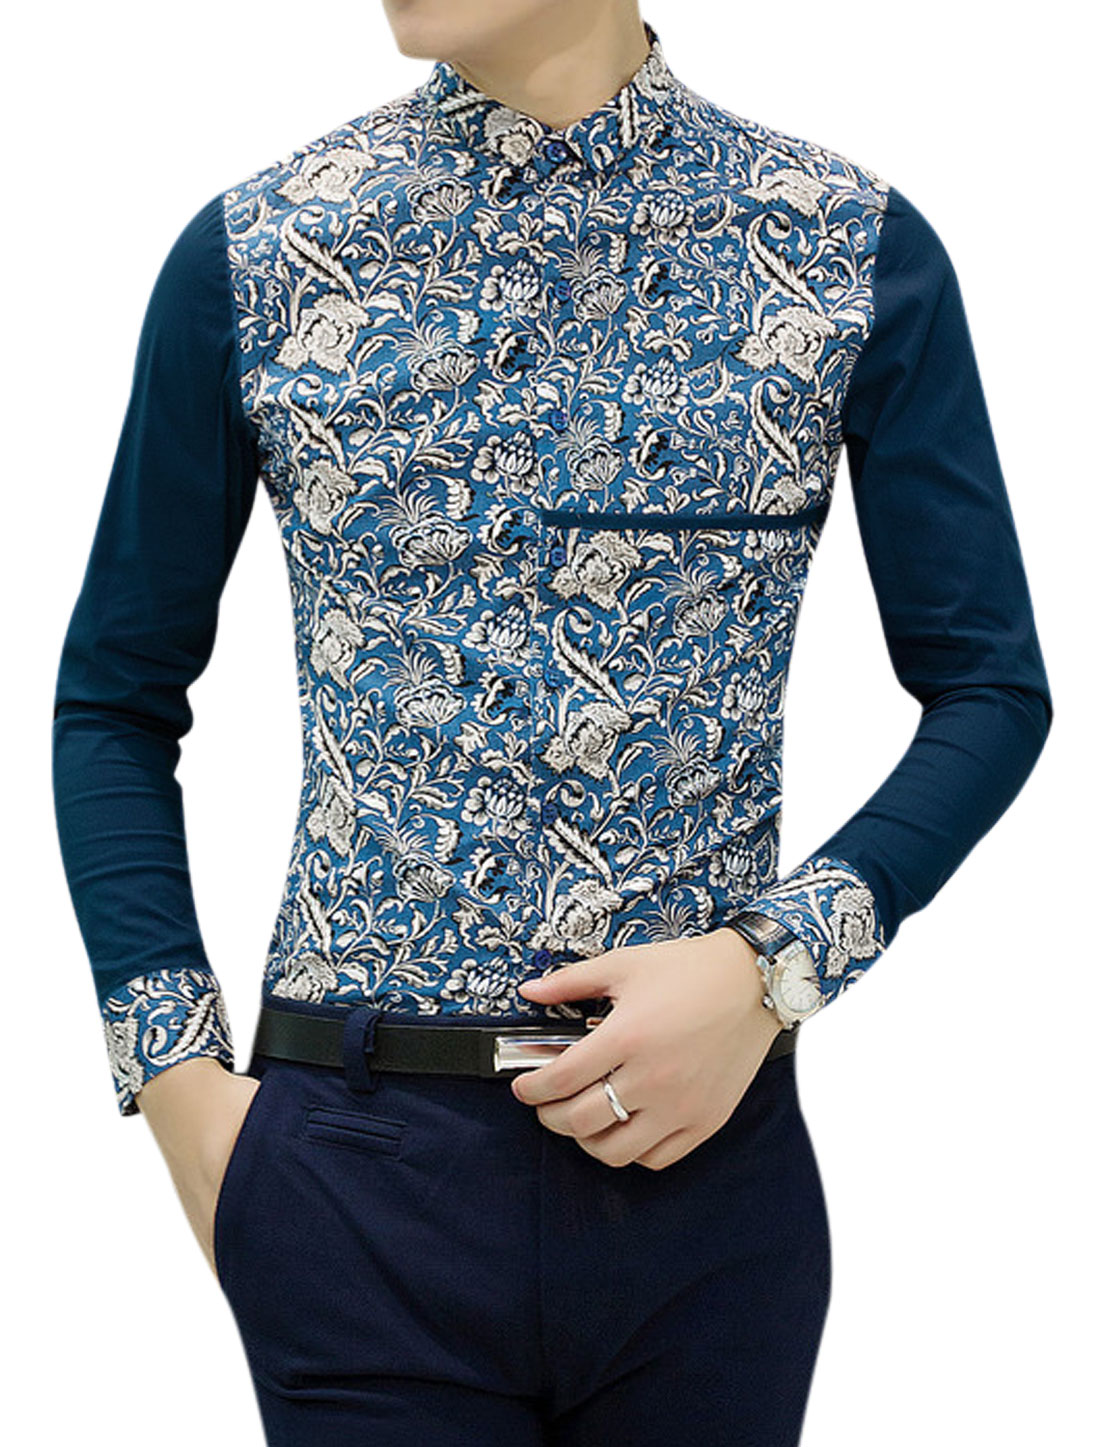 Men Contrast Sleeves Button Closure Casual Shirts Blue Navy Blue S